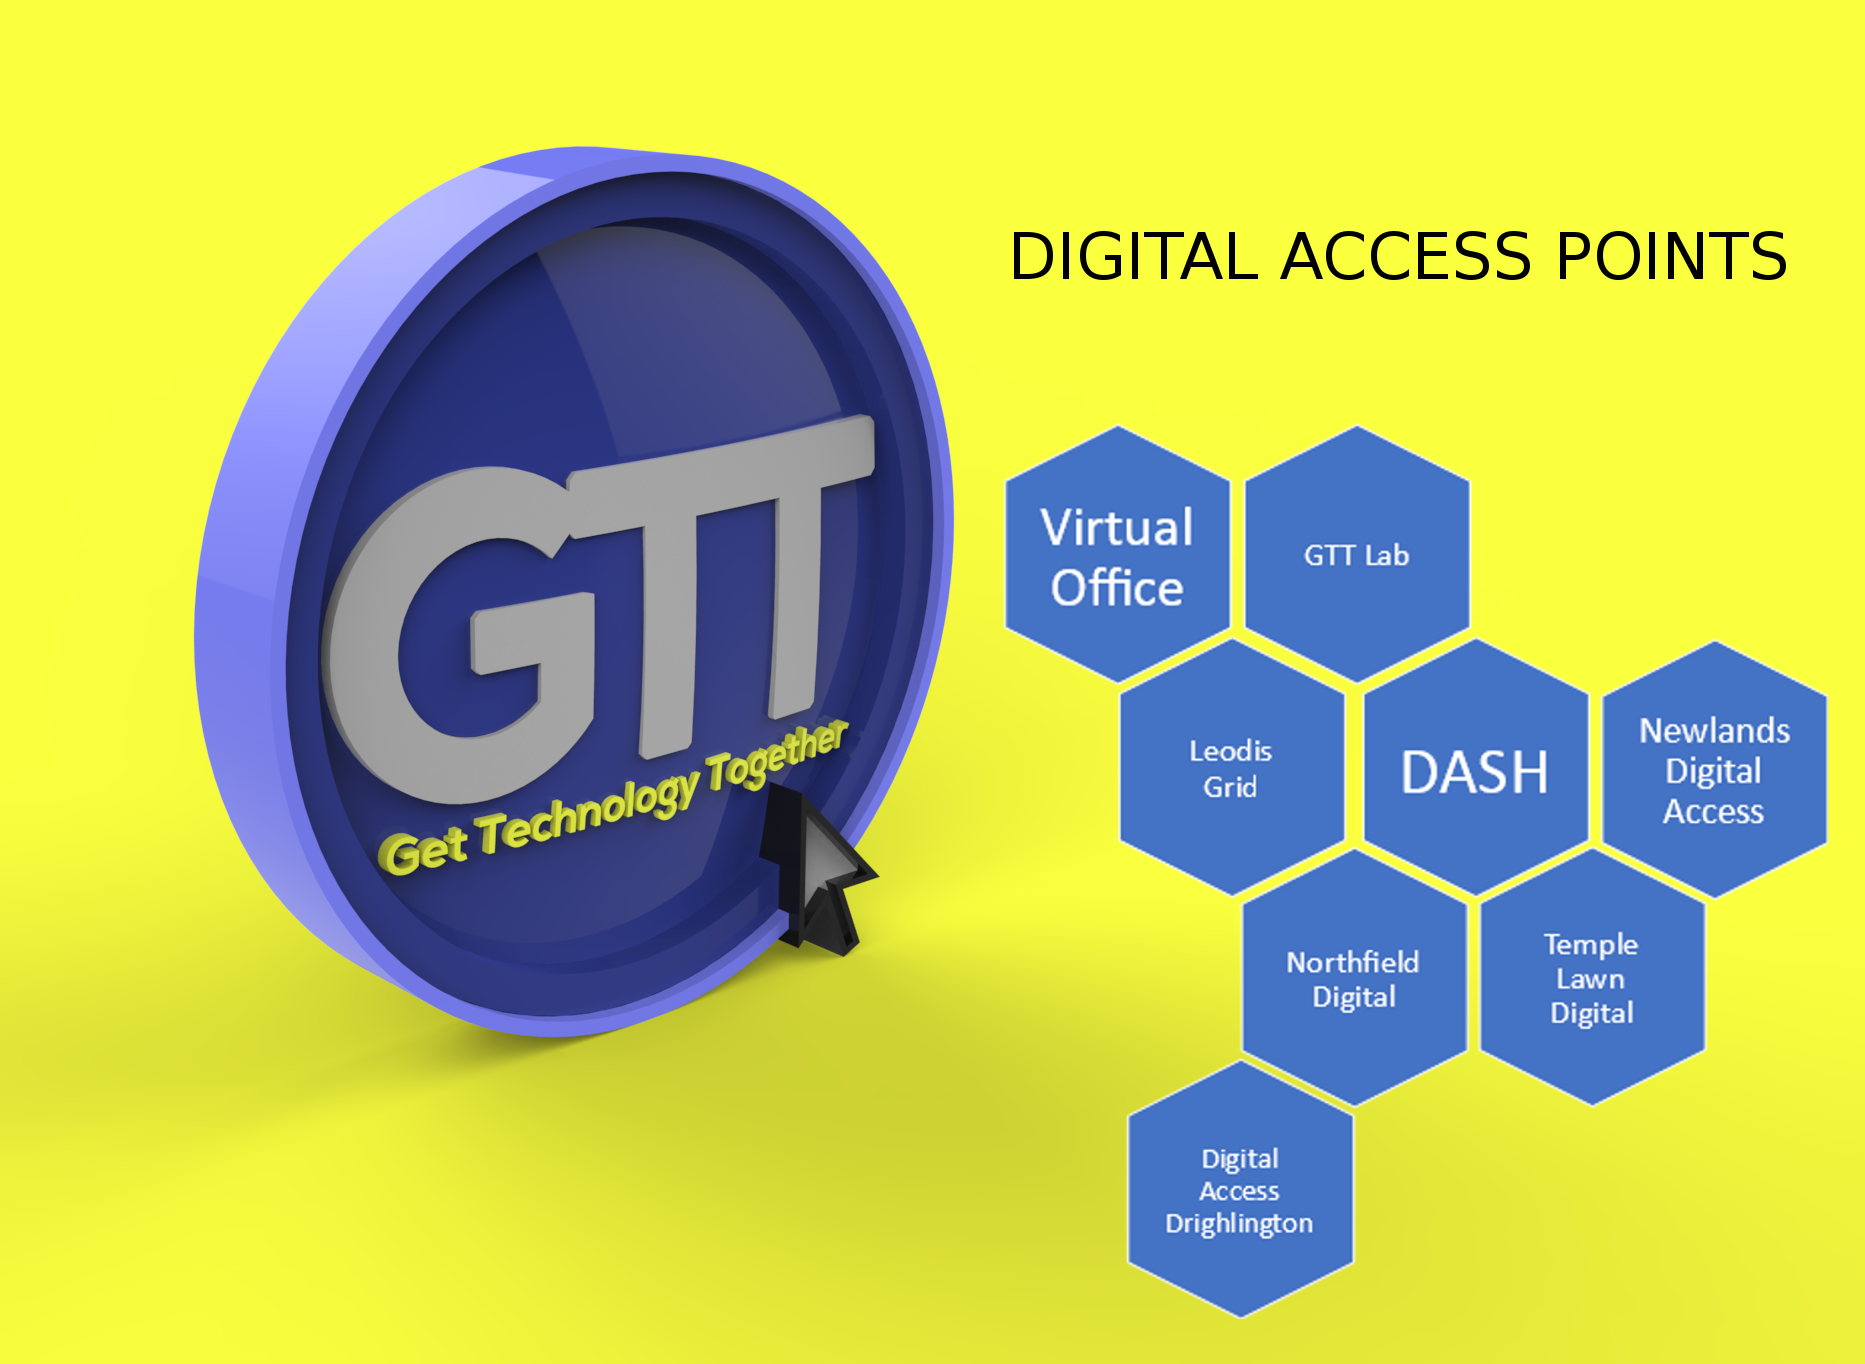 Digital Access Points